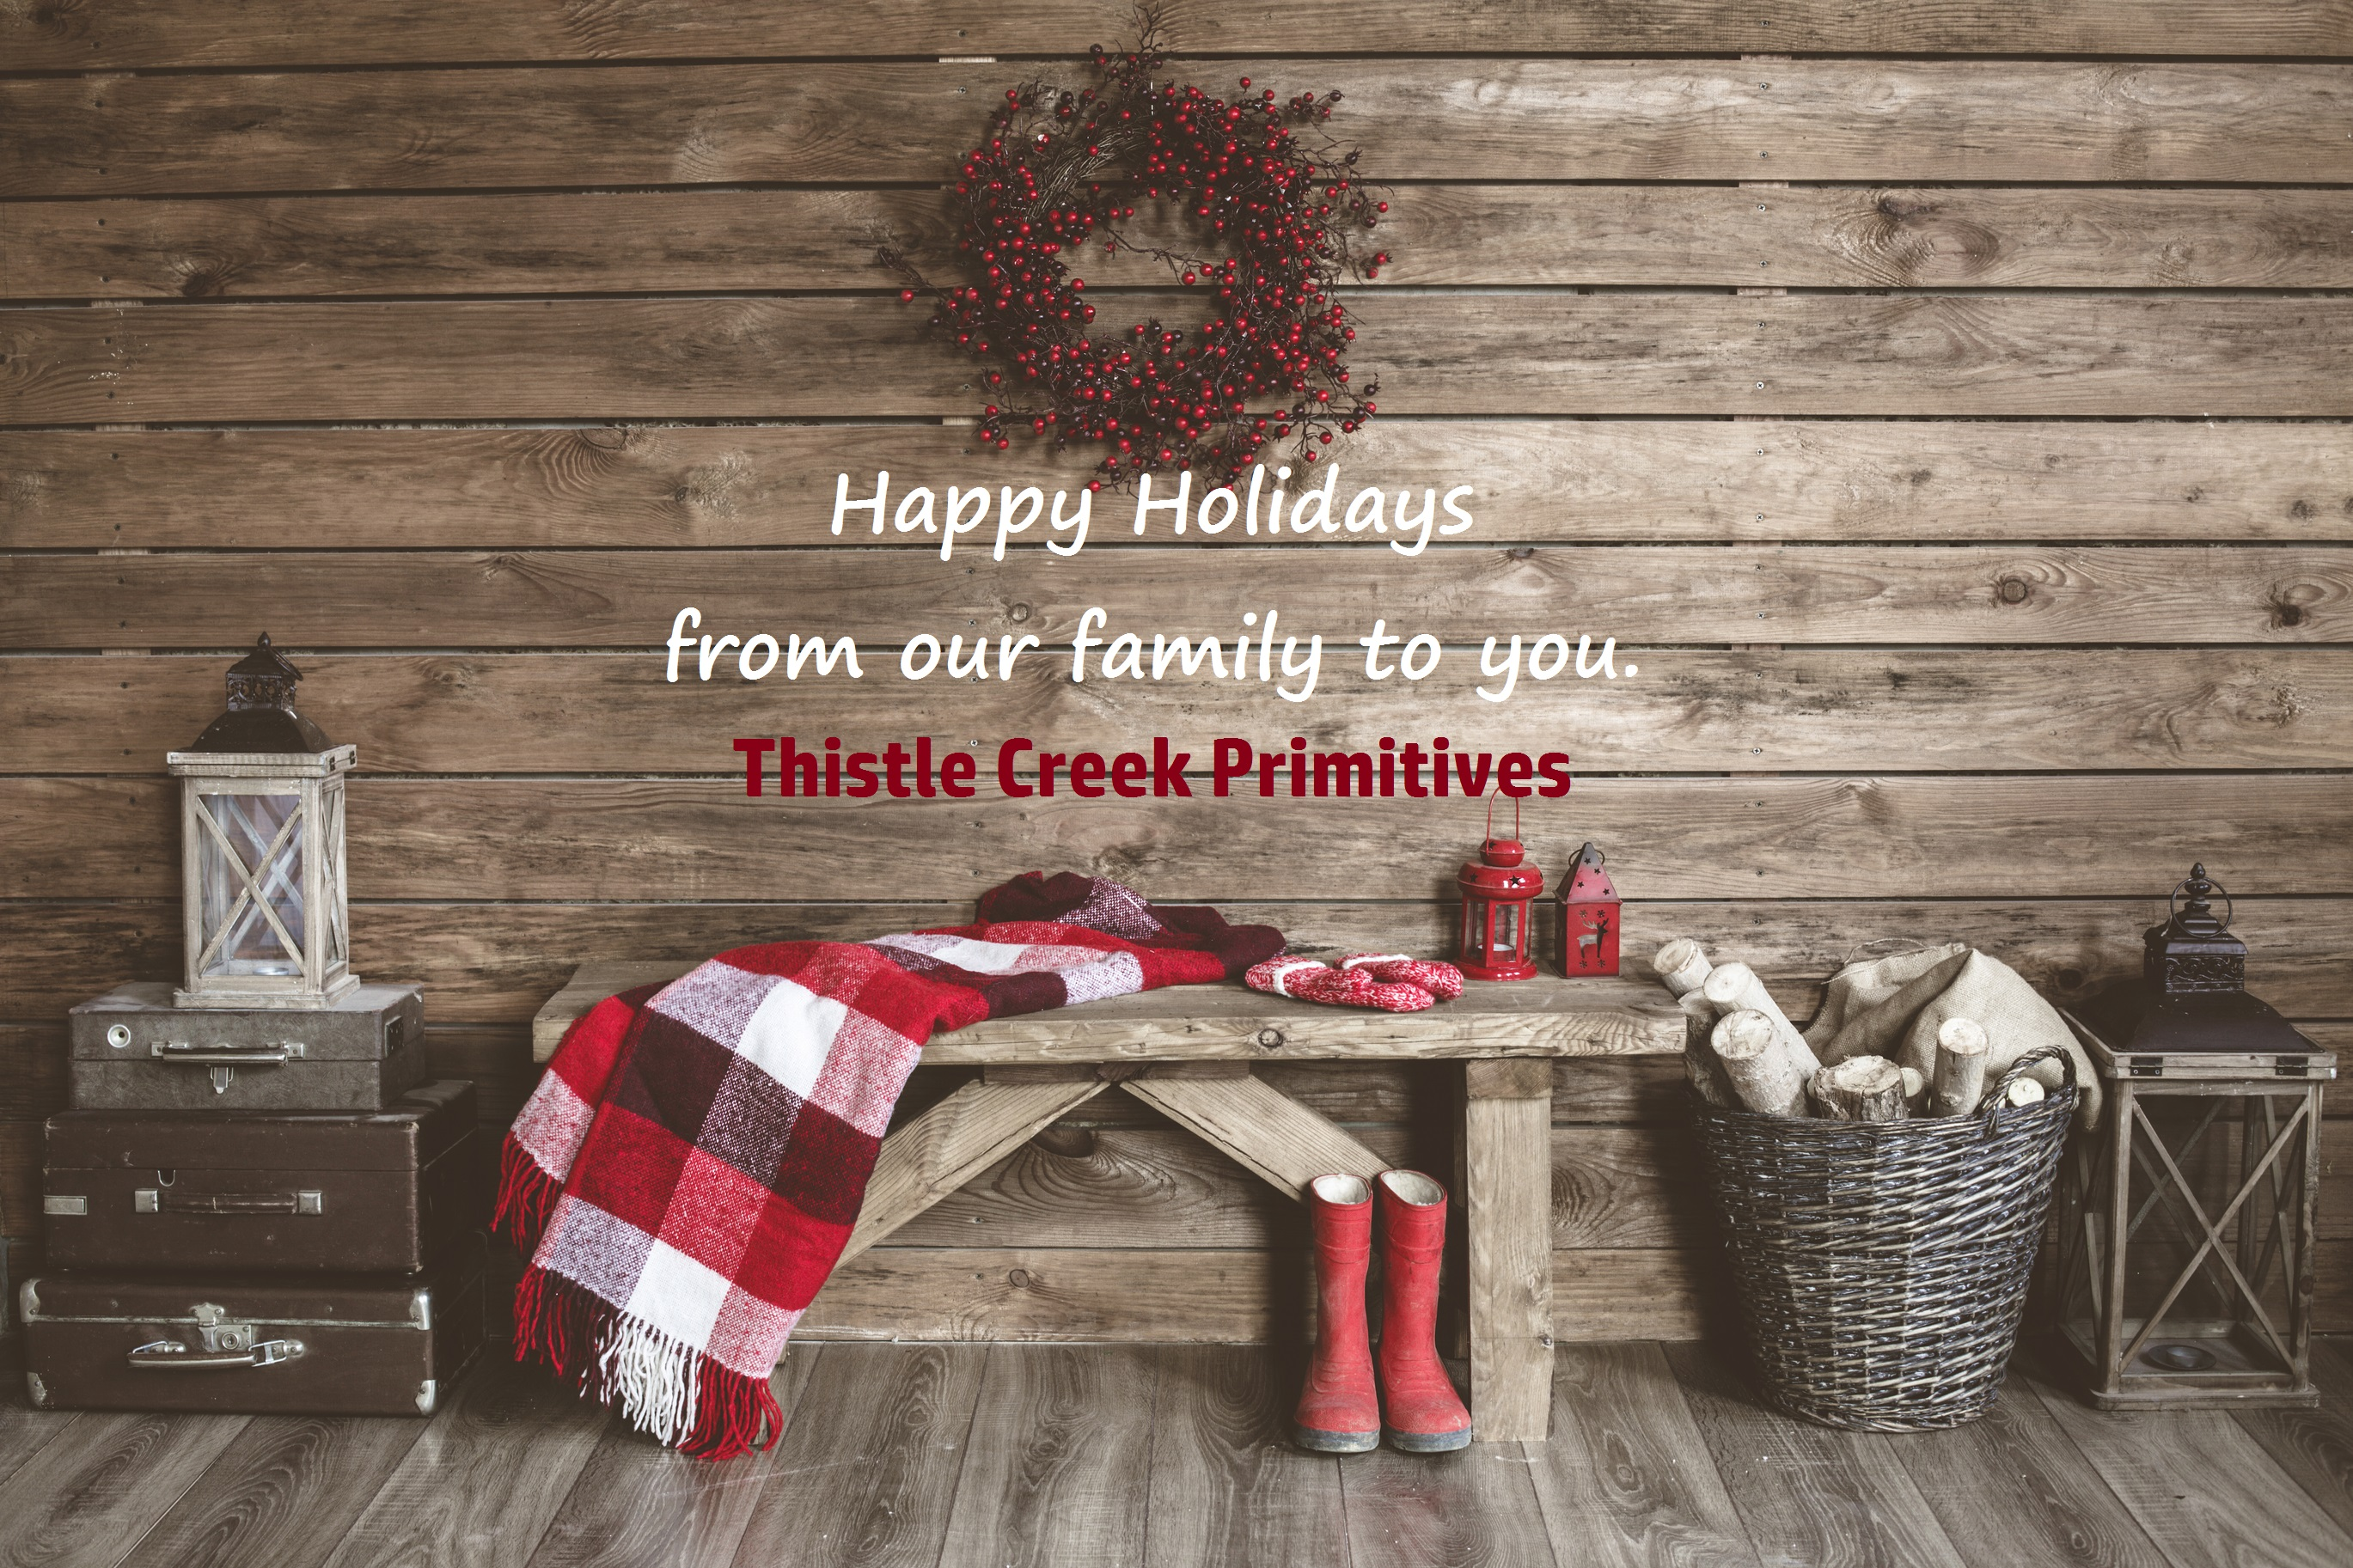 thistle creek primitives   country home decor and gifts